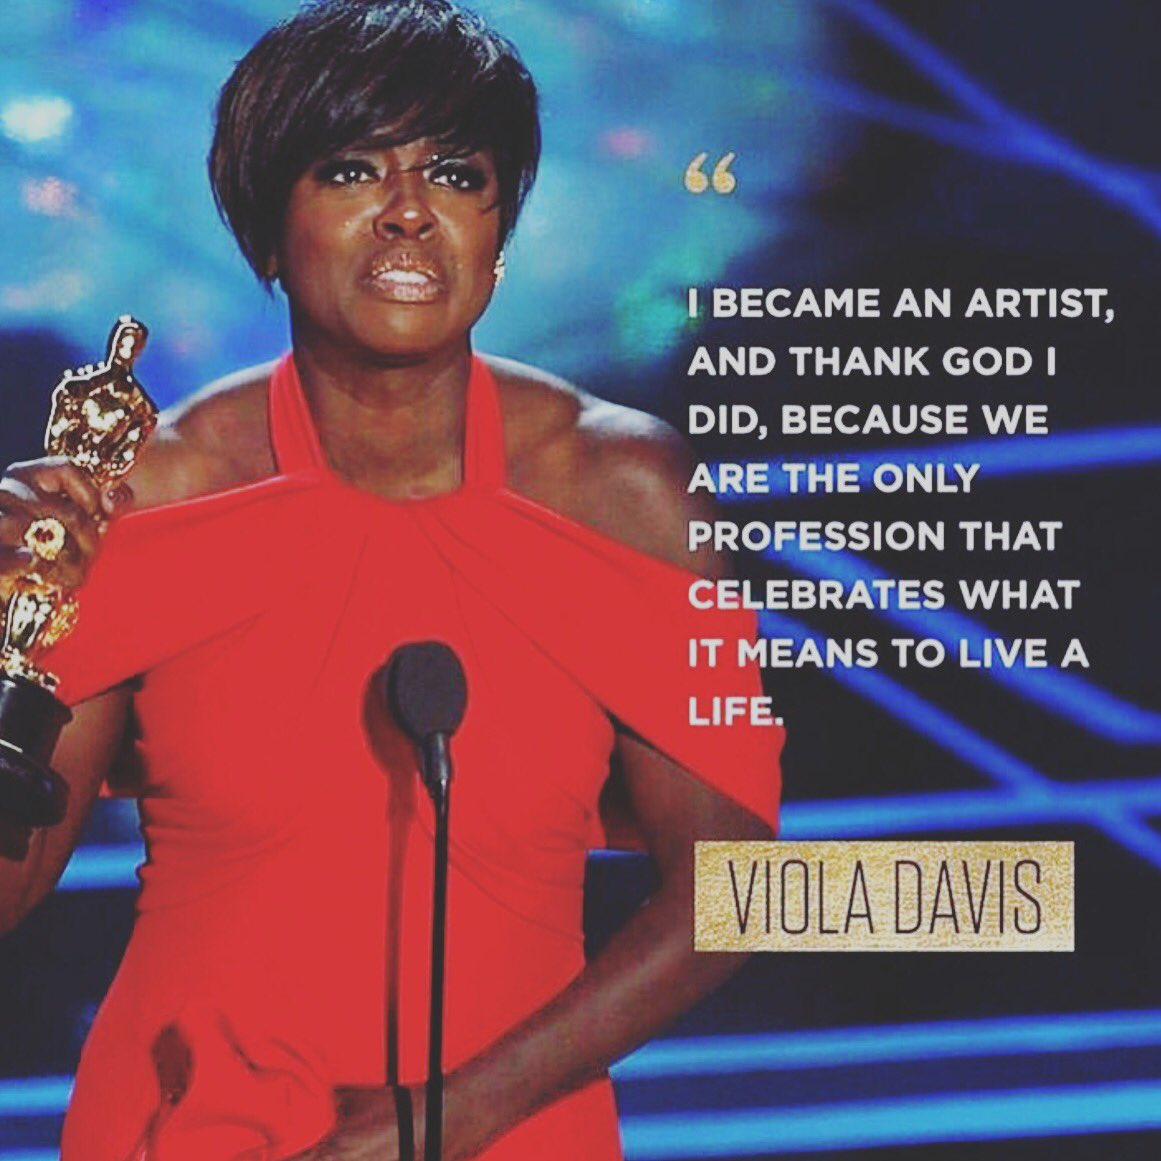 Word!  #ViolaDavis #Oscars https://t.co/HRmpNPUSAH